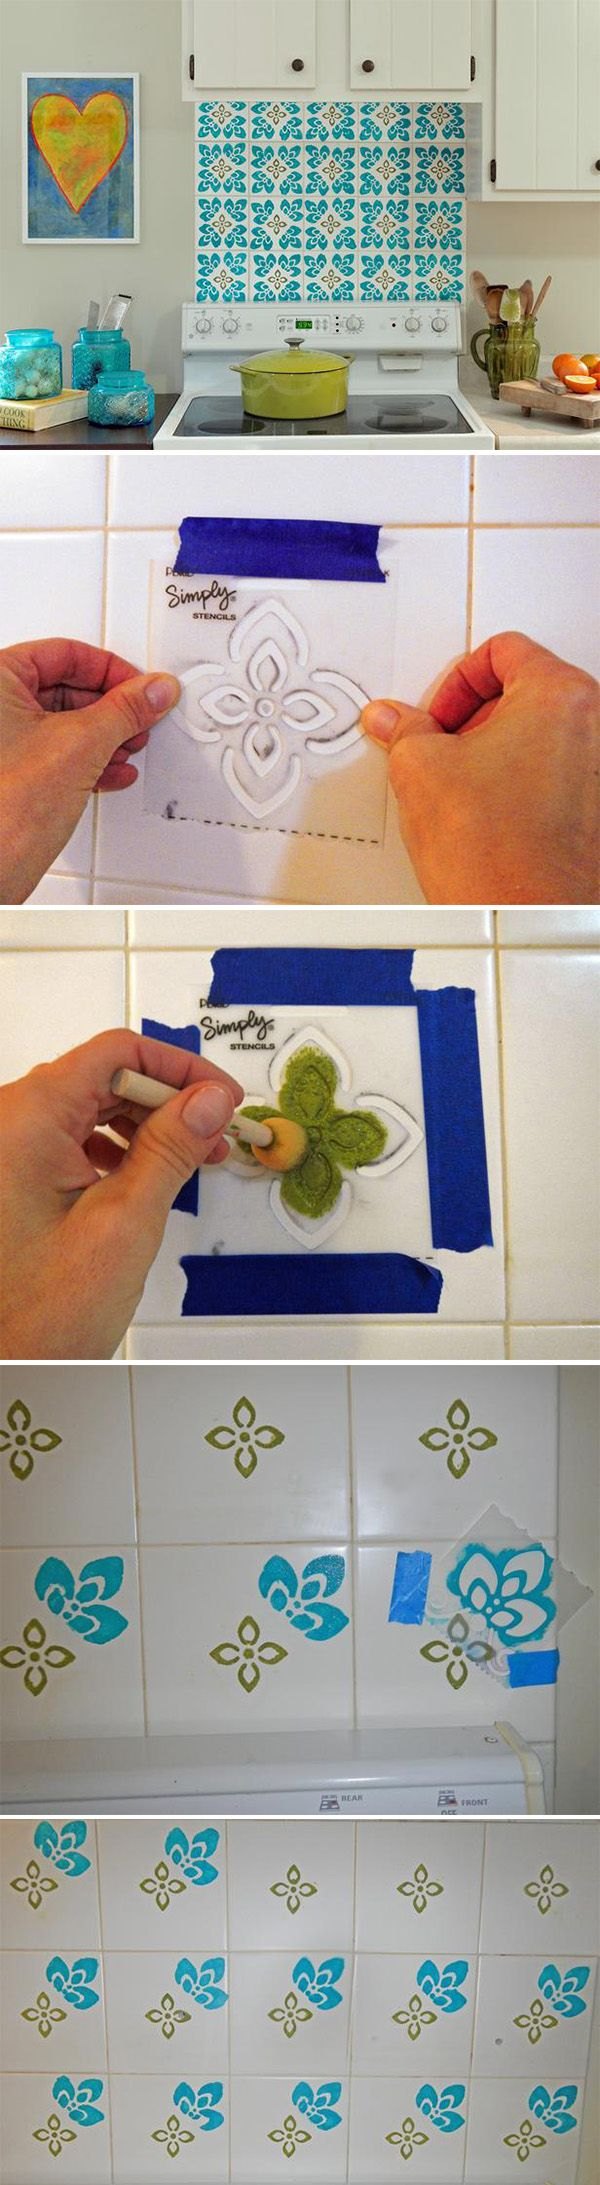 How to Paint and Stencil Backsplash Tile >> http://www.diynetwork.com/kitchen/how-to-paint-backsplash-tile/pictures/index.html?soc=pinterest